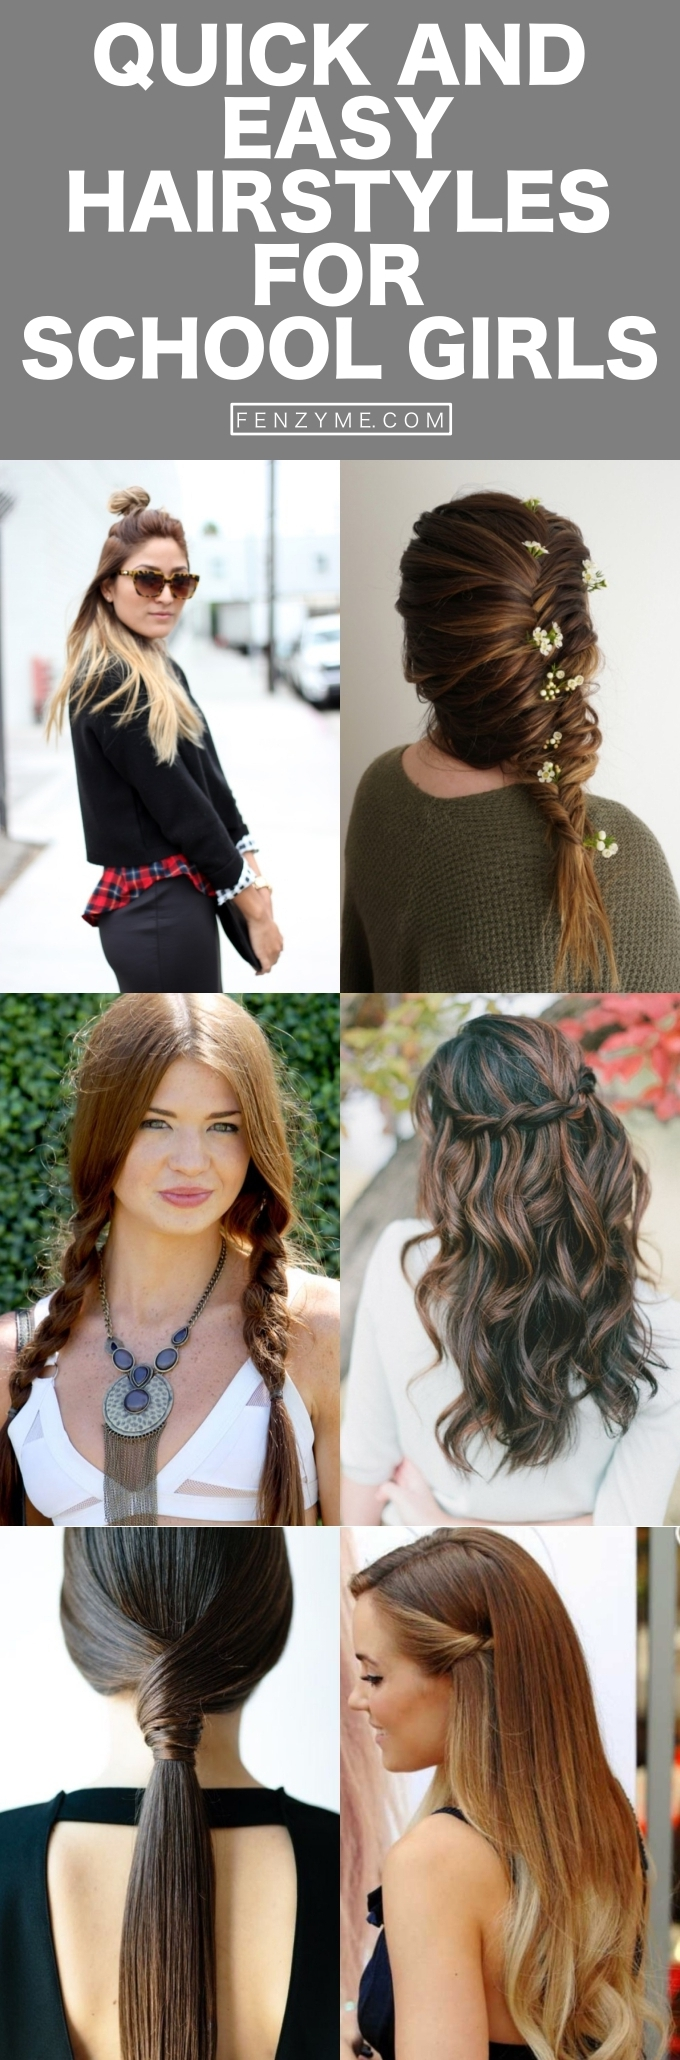 Quick and Easy Hairstyles for School Girls